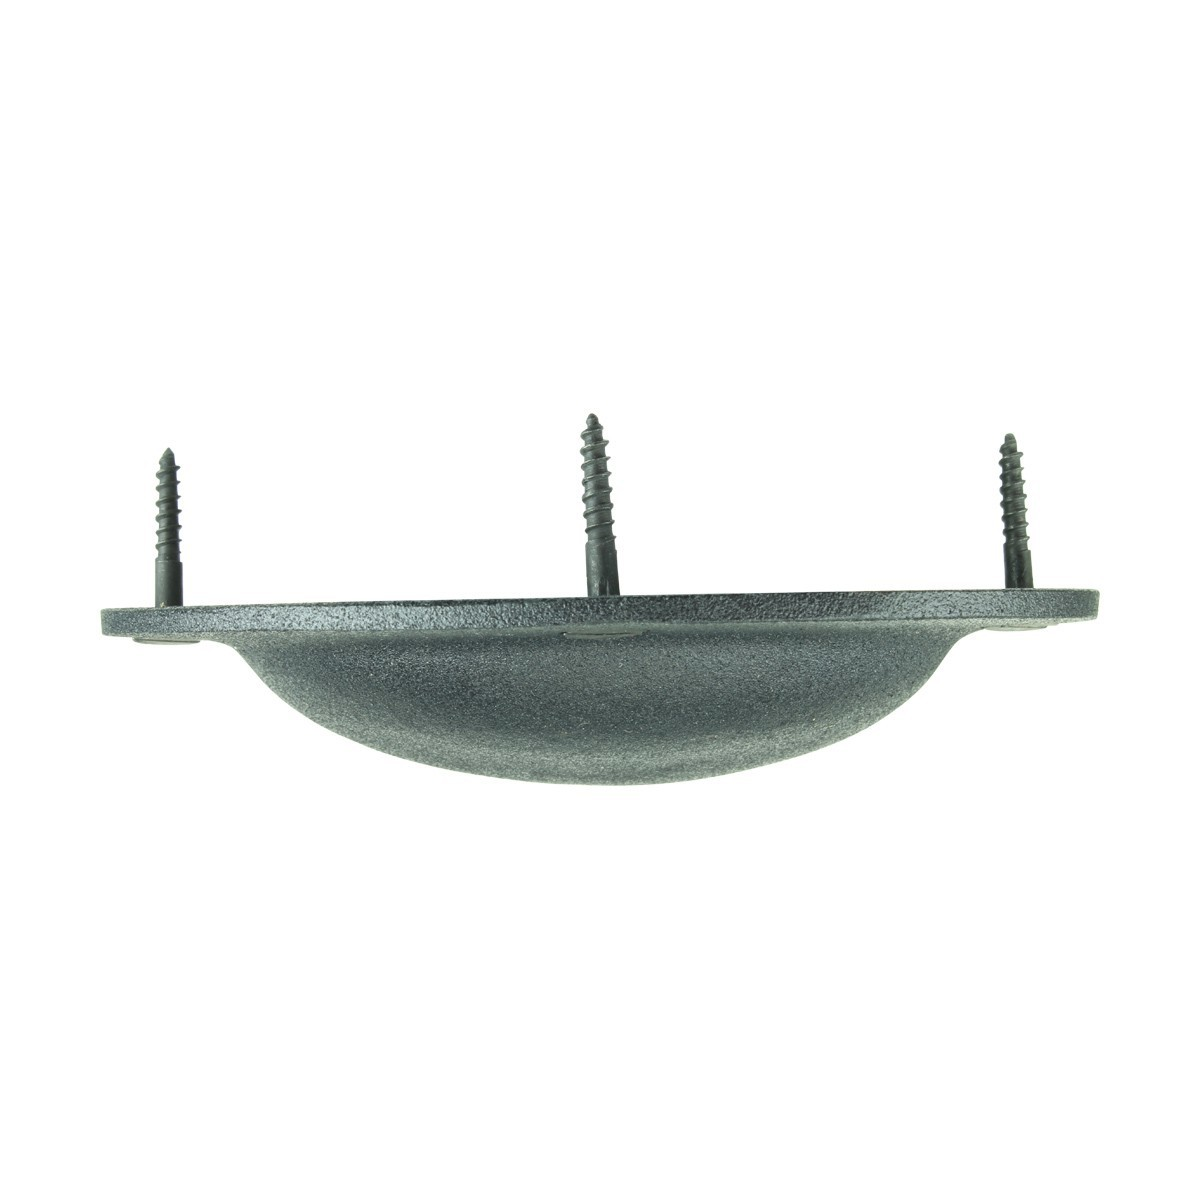 Cabinet or Drawer Bin Pull Black Iron Cup 4 Inch Wide Set Of 6 Furniture Hardware Cabinet Pull Cabinet Hardware